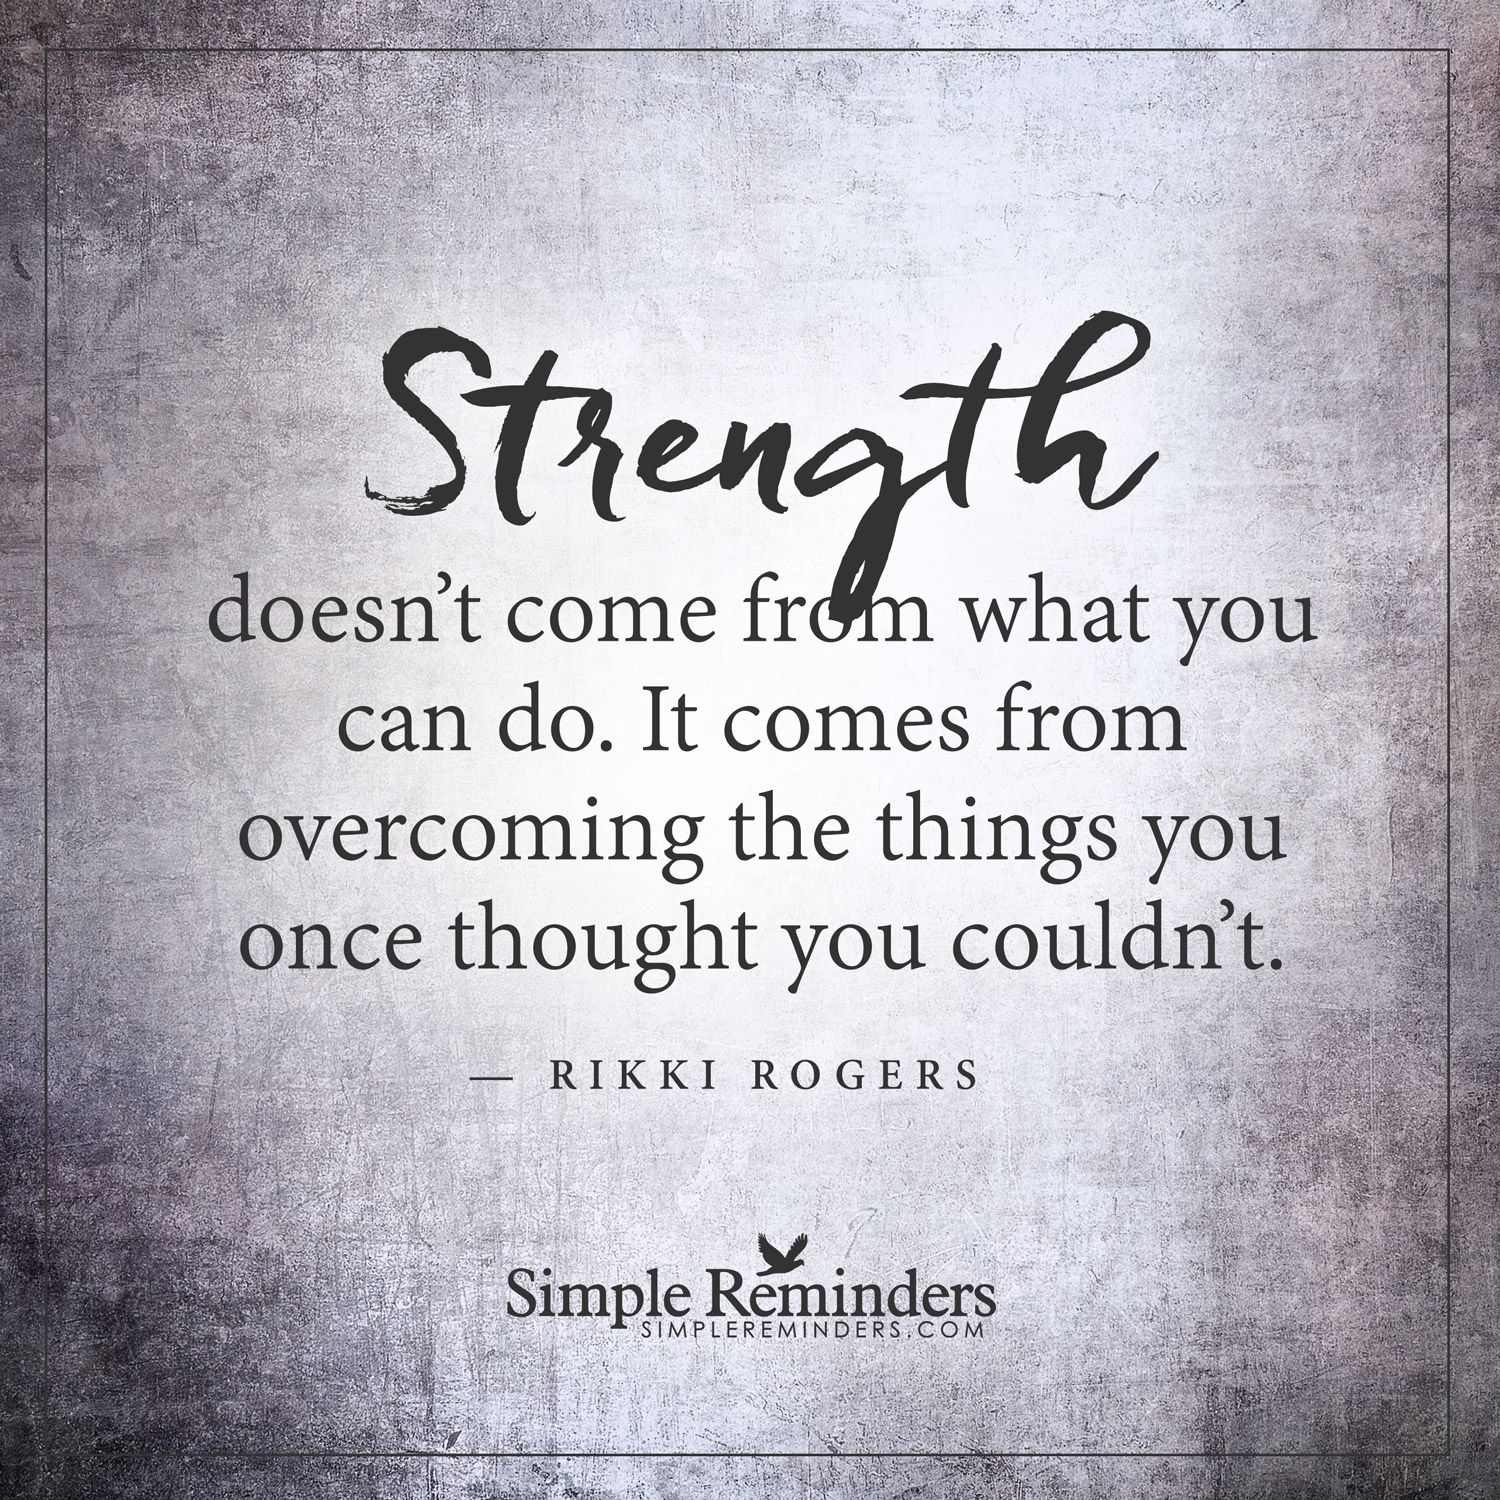 Quotes About Strength: Overcoming Things Strength Doesn't Come From What You Can